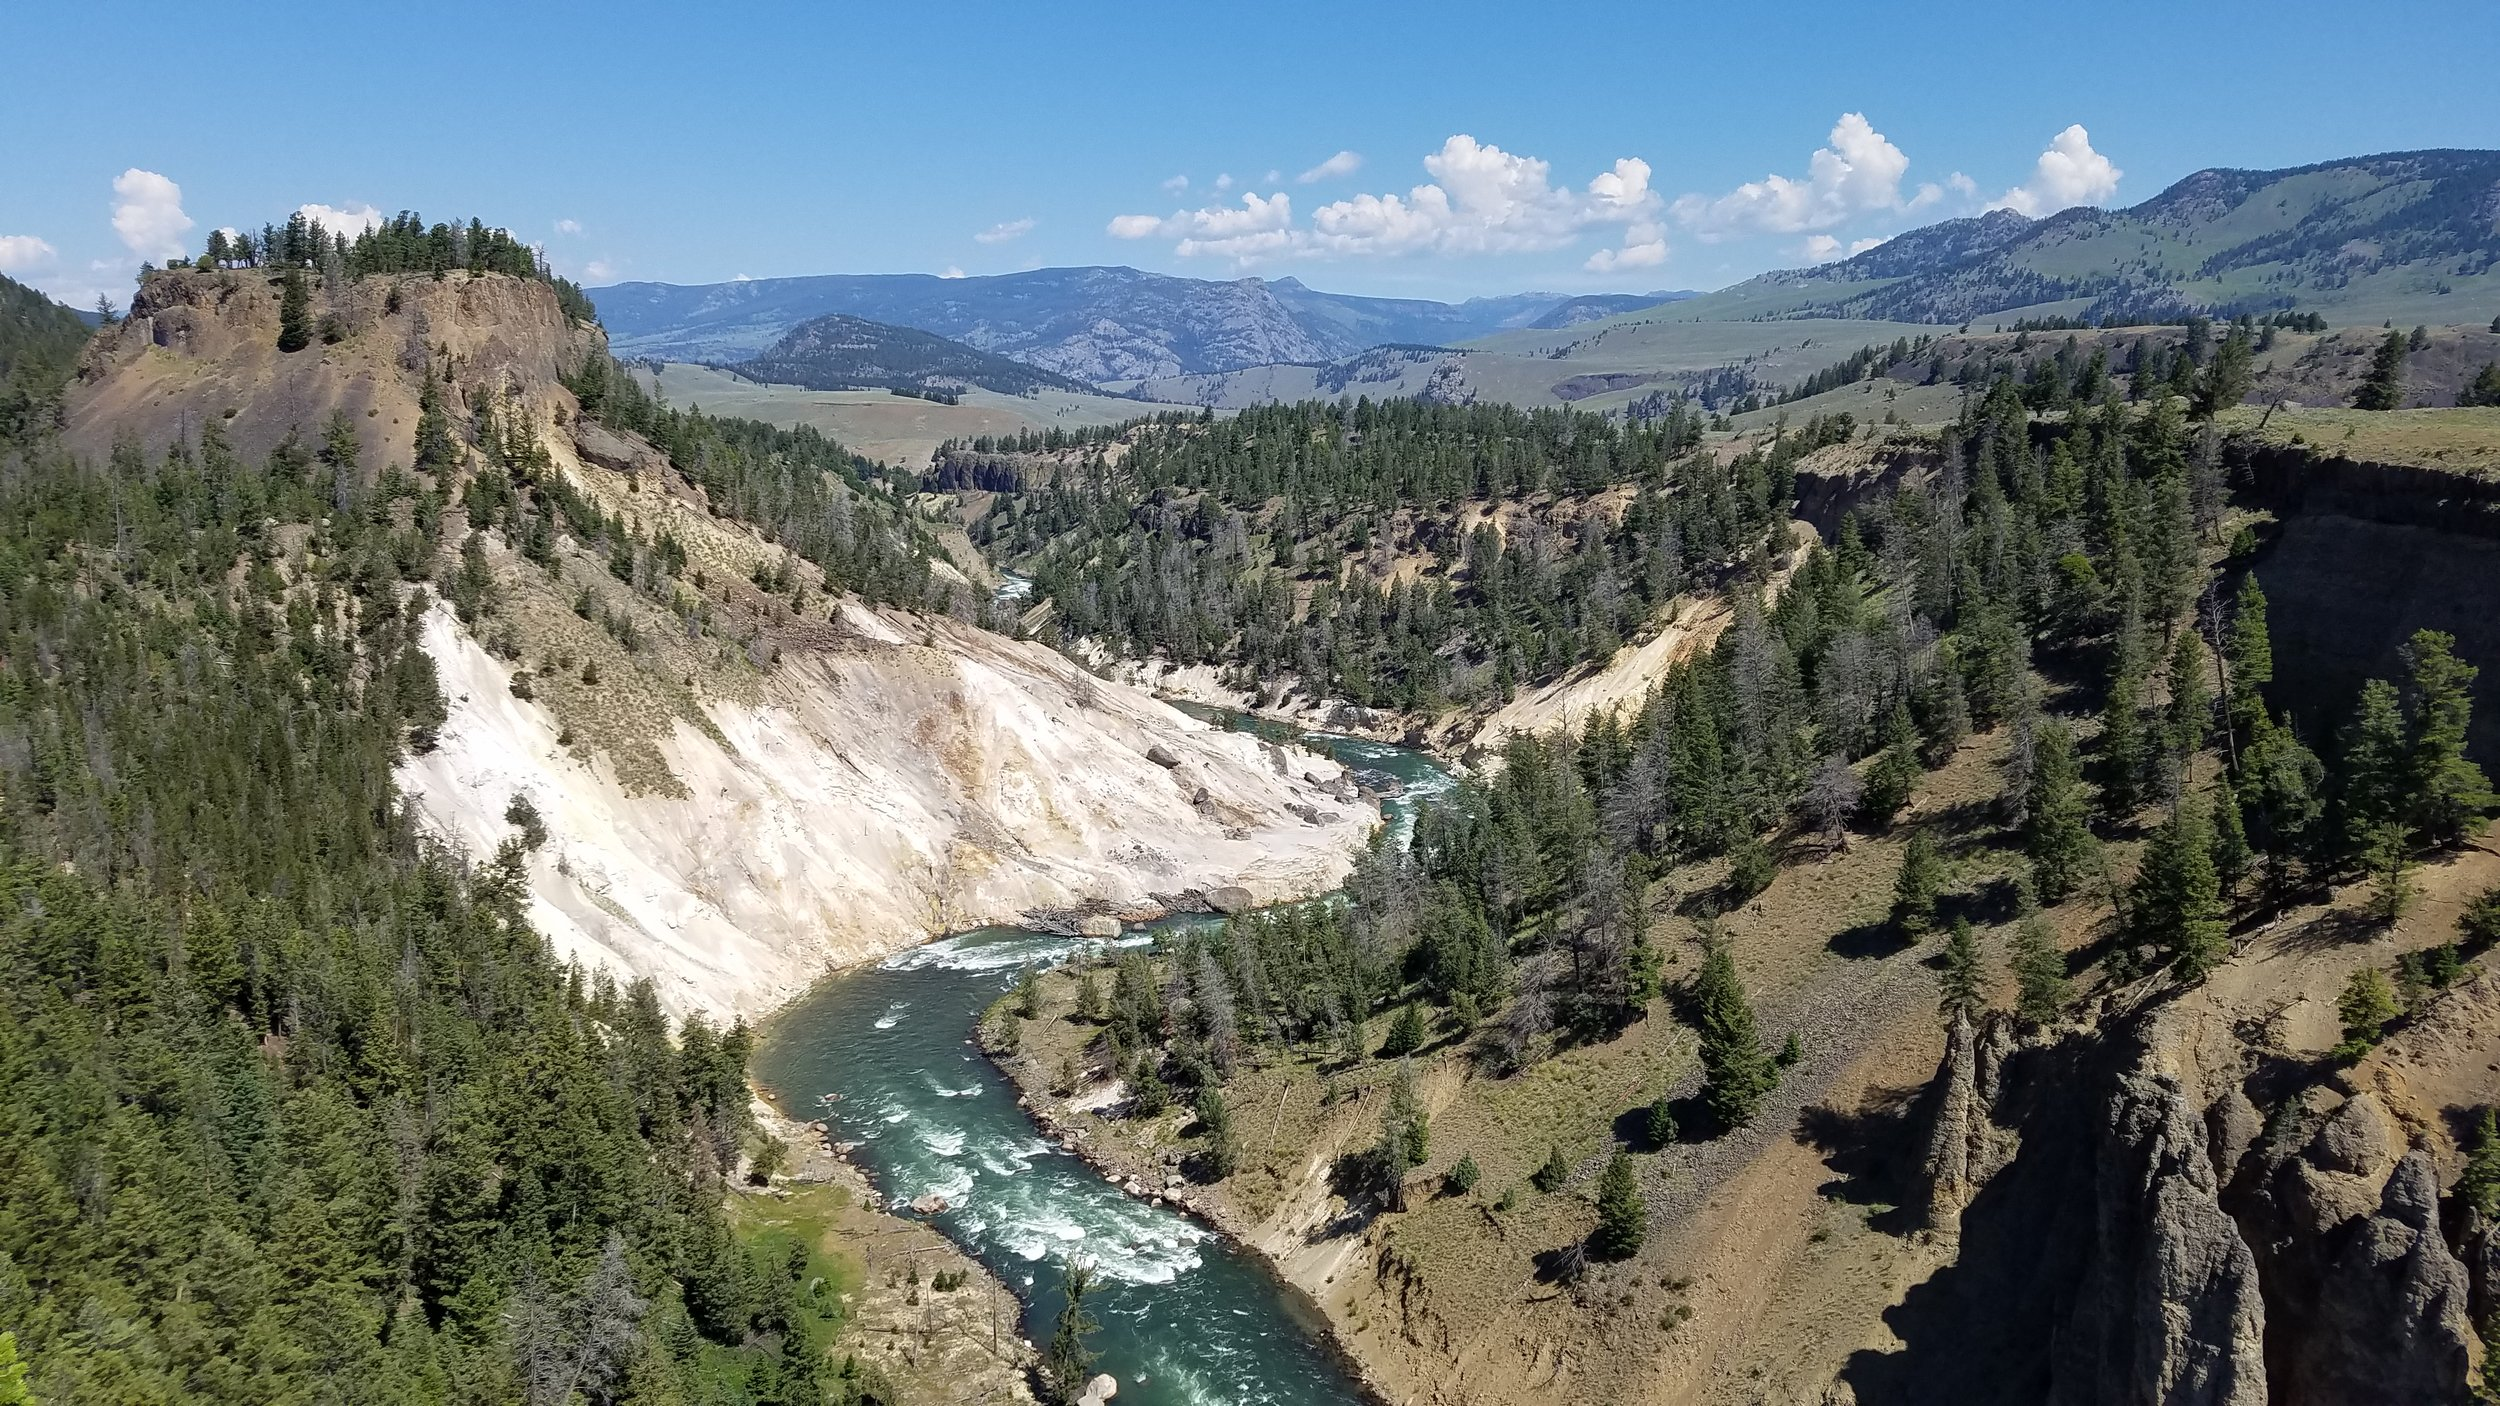 Yellowstone - Calcite Springs - Top Five National Parks